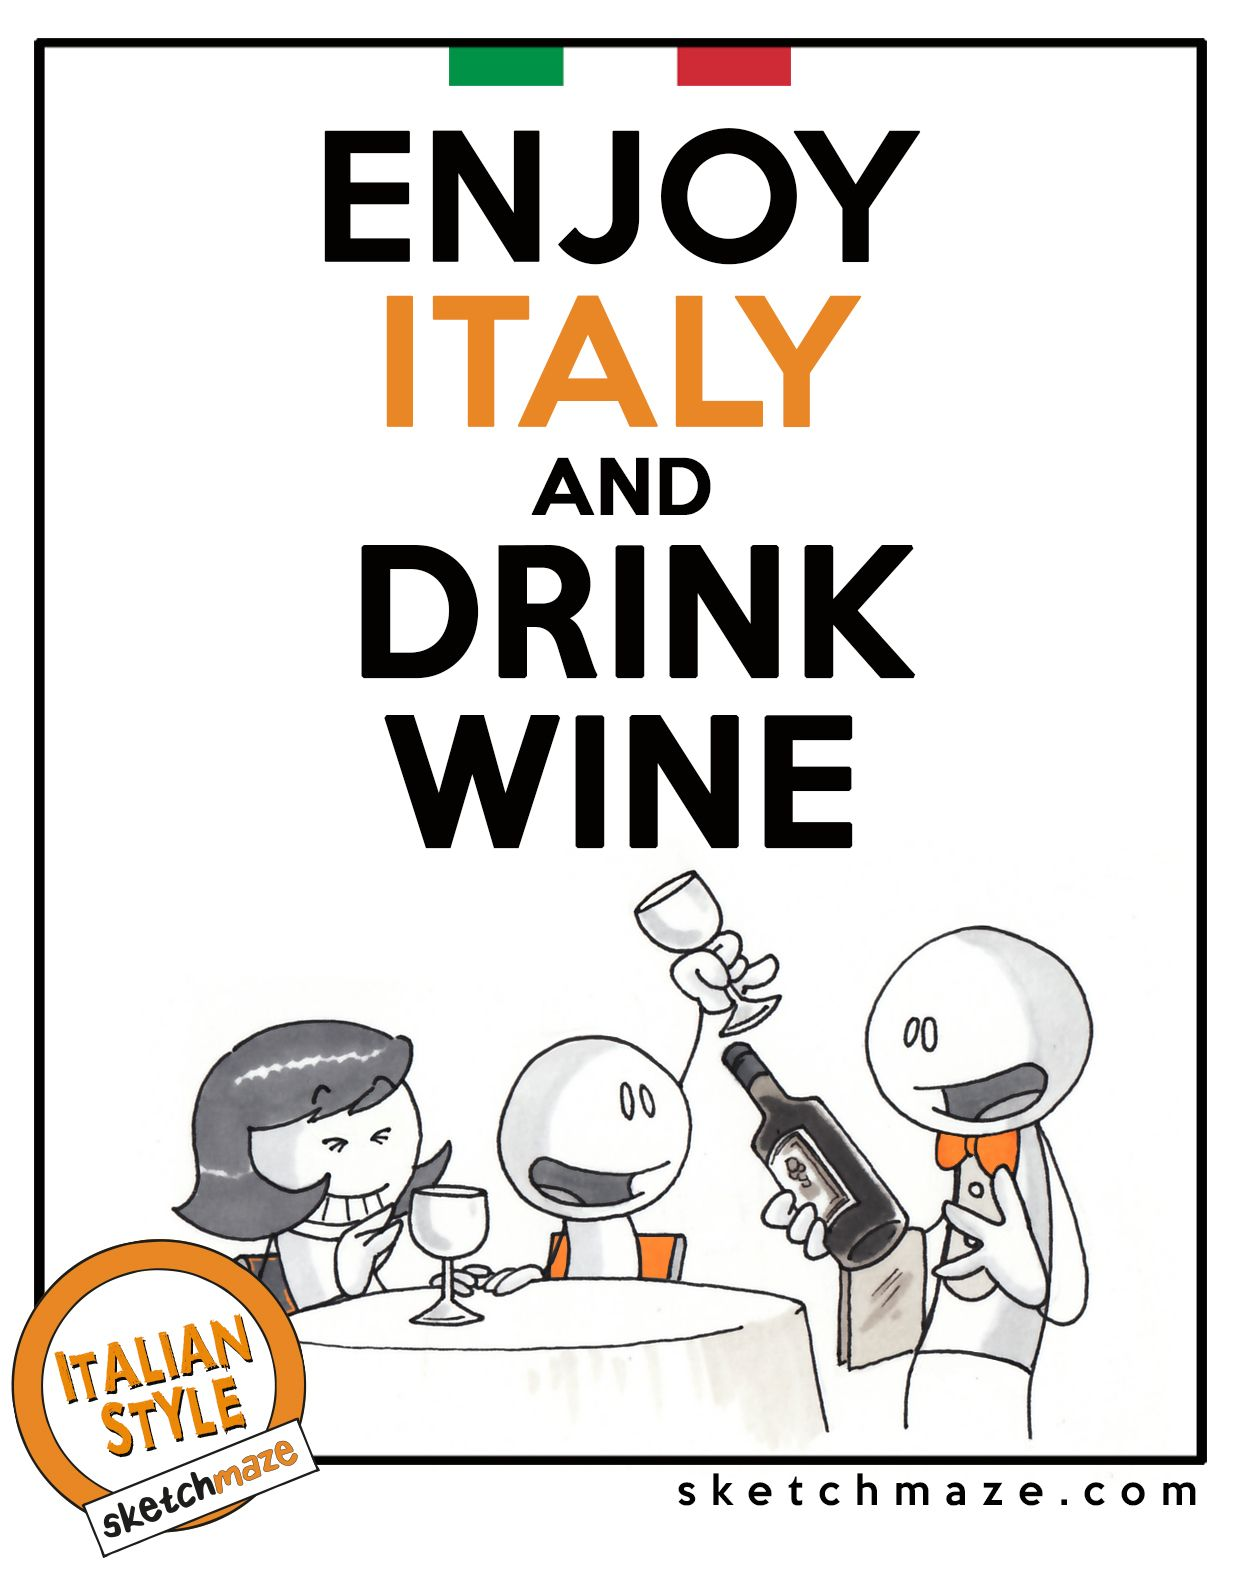 Enjoy Italy And Drink Wine #Sketchmaze #Enjoy #Enjoyitaly #Italy #Italia